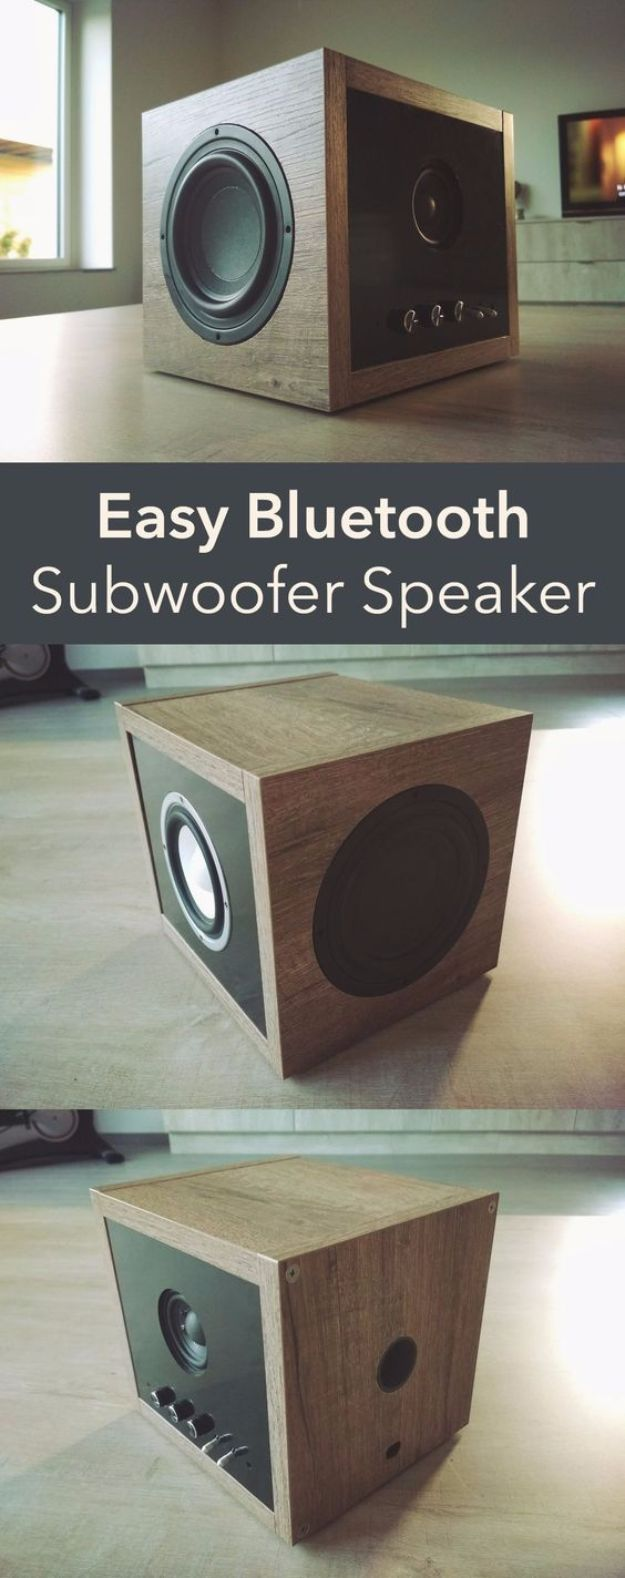 Diy gadgets easy bluetooth subwoofer speaker homemade gadget diy gadgets easy bluetooth subwoofer speaker homemade gadget ideas and projects for men women teens and kids steampunk inventions solutioingenieria Images